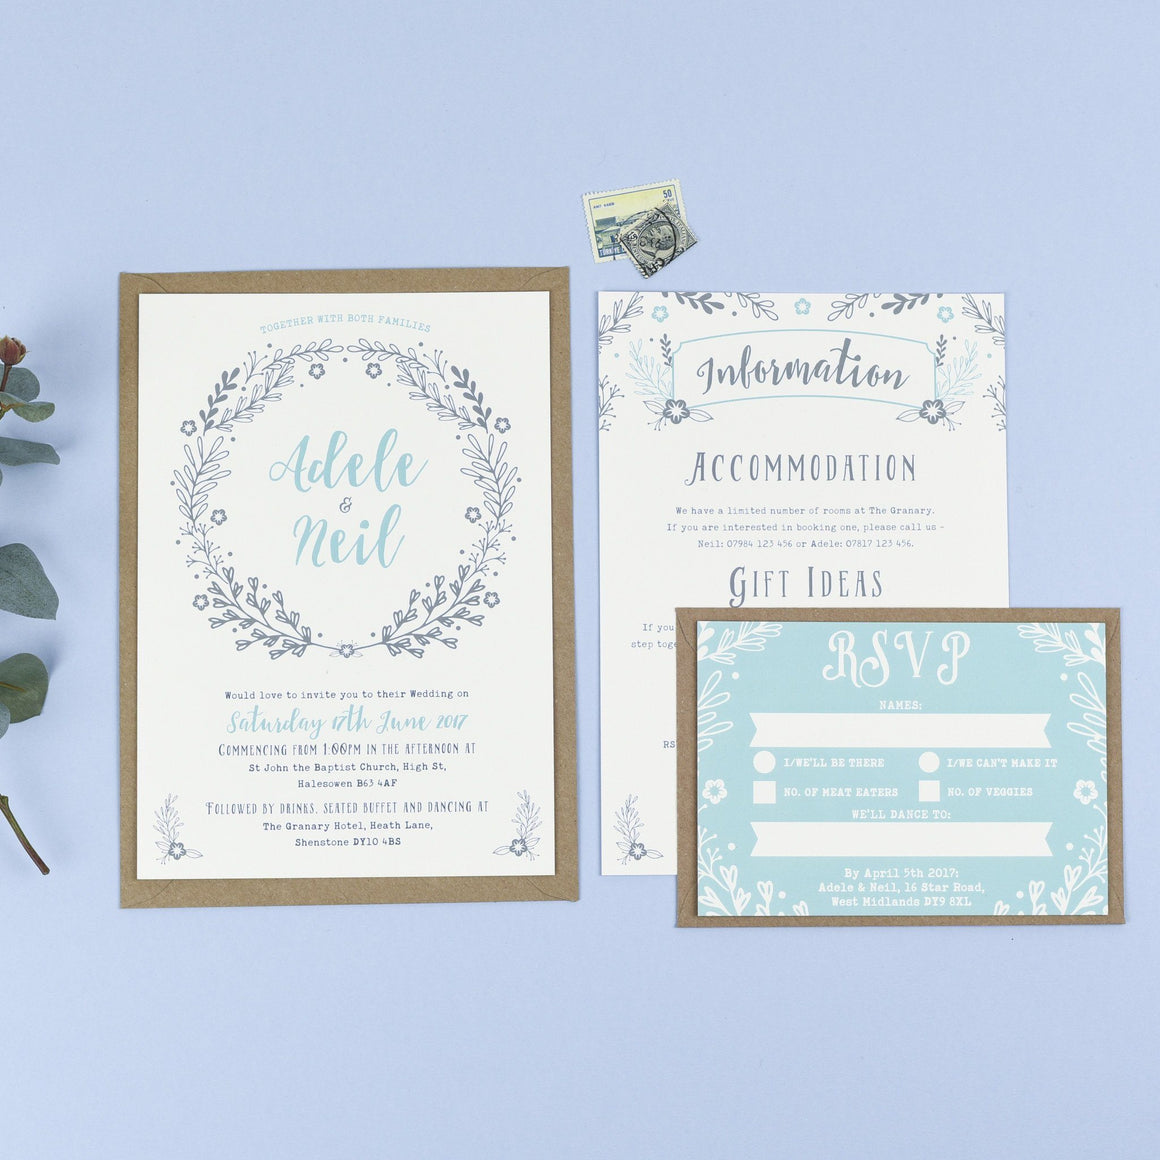 A5 Wedding Invitation - Willow Rustic Wreath Wedding Invitations